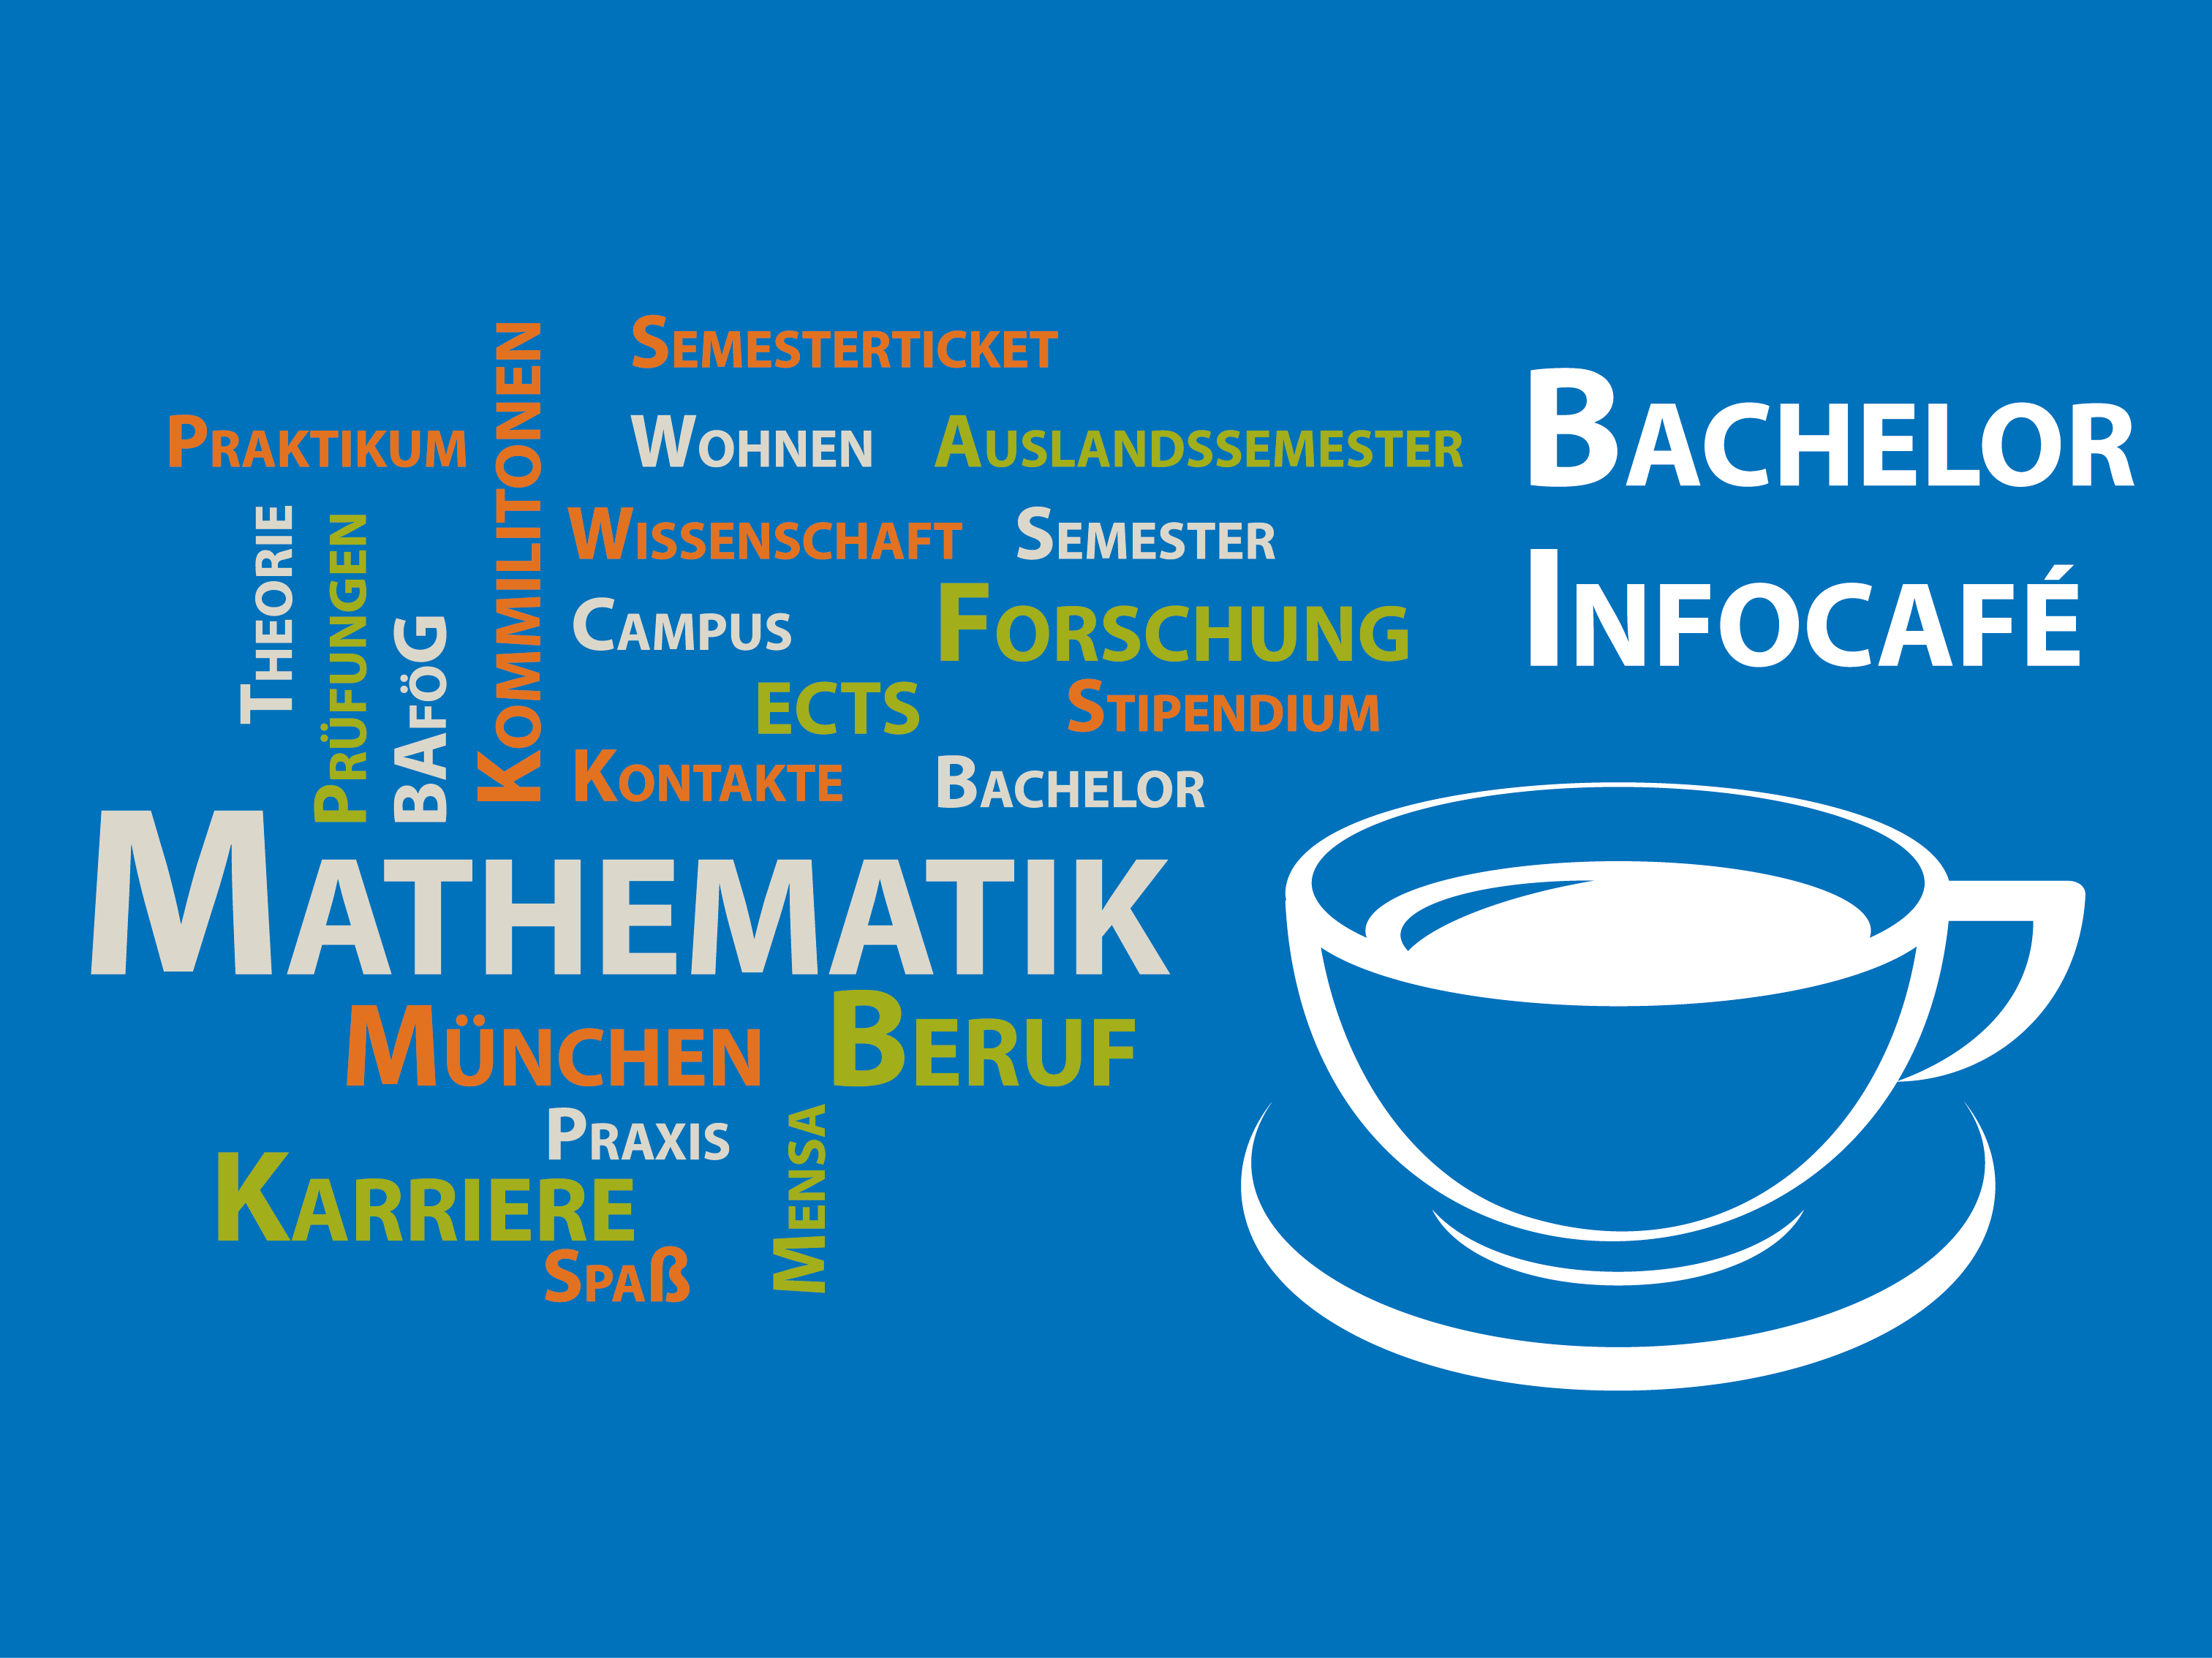 Bachelor Infocafé 2018 am 13. Juli.